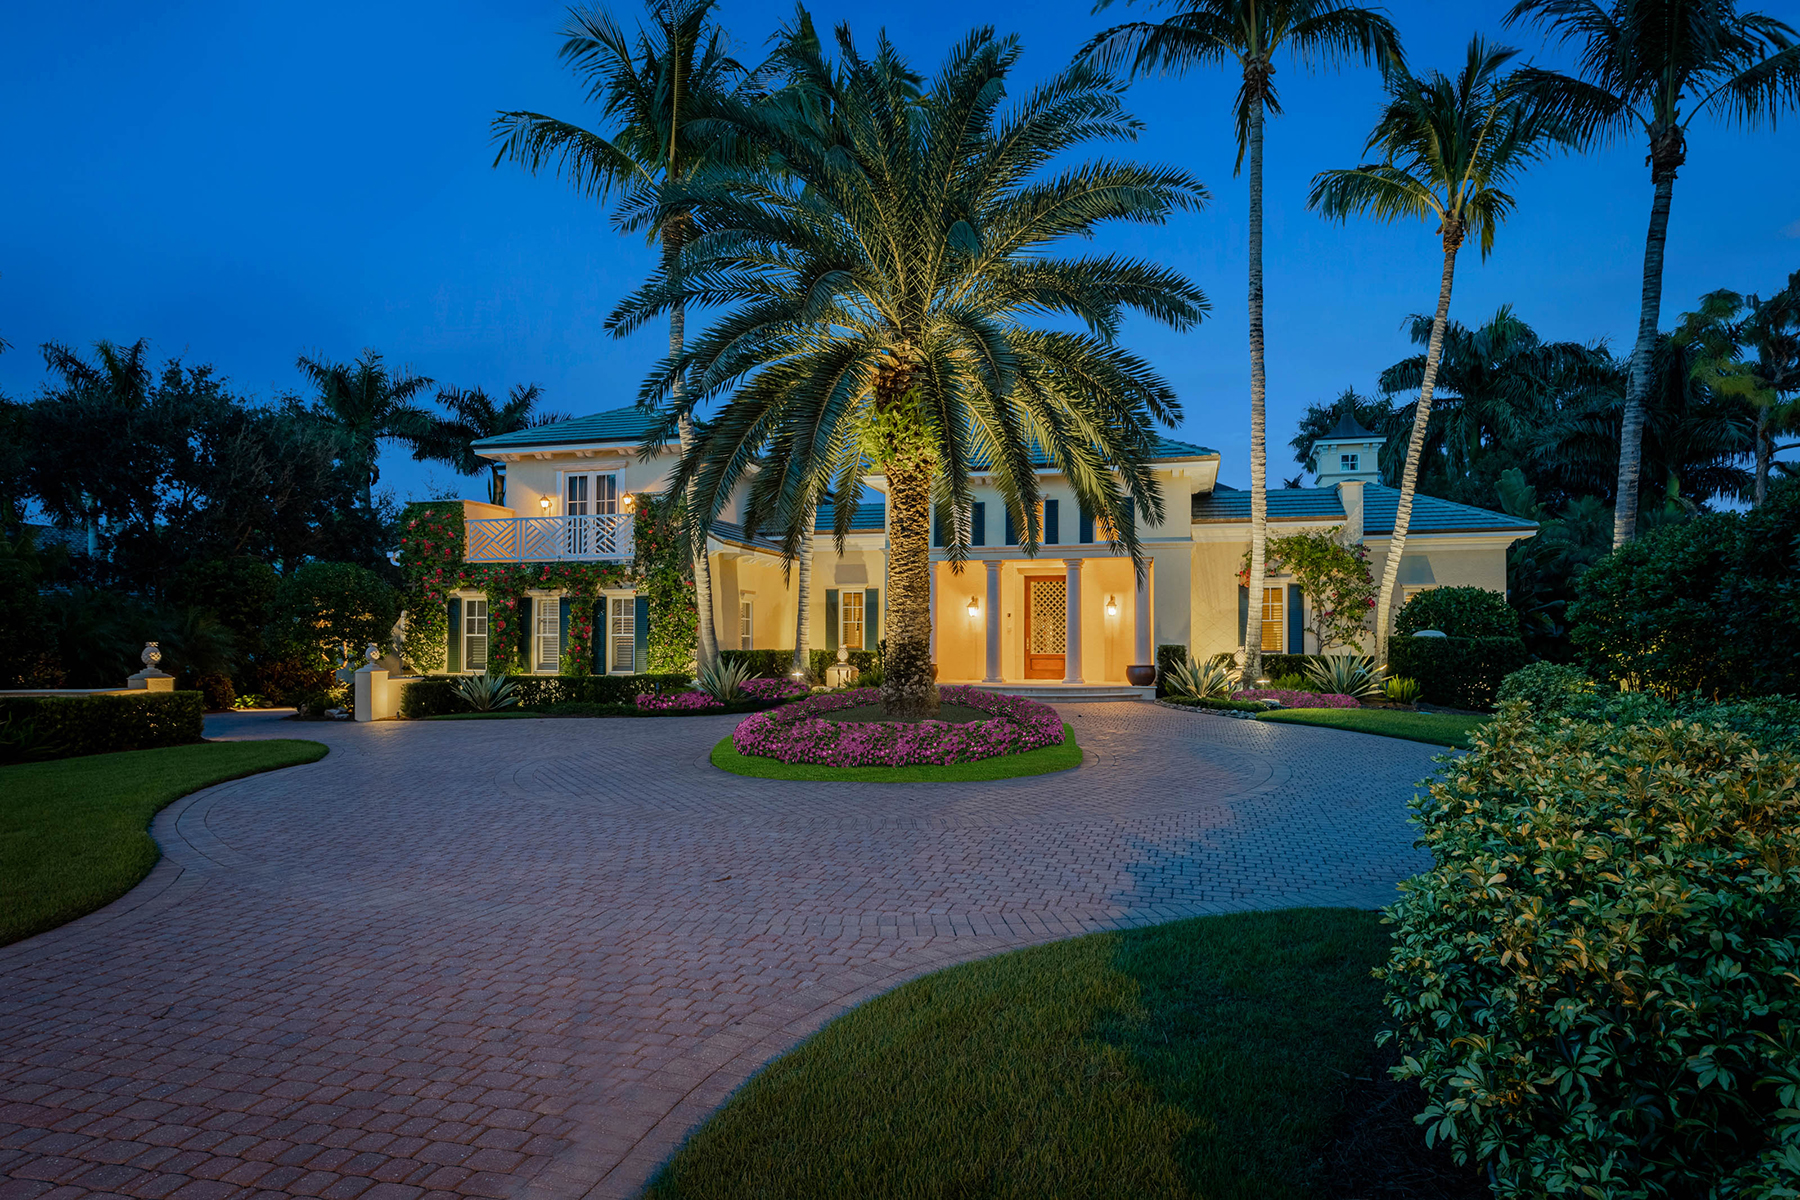 Single Family Homes for Sale at BONITA BAY - ROOKERY LAKE 26531 Rookery Lake Drive Bonita Springs, Florida 34134 United States